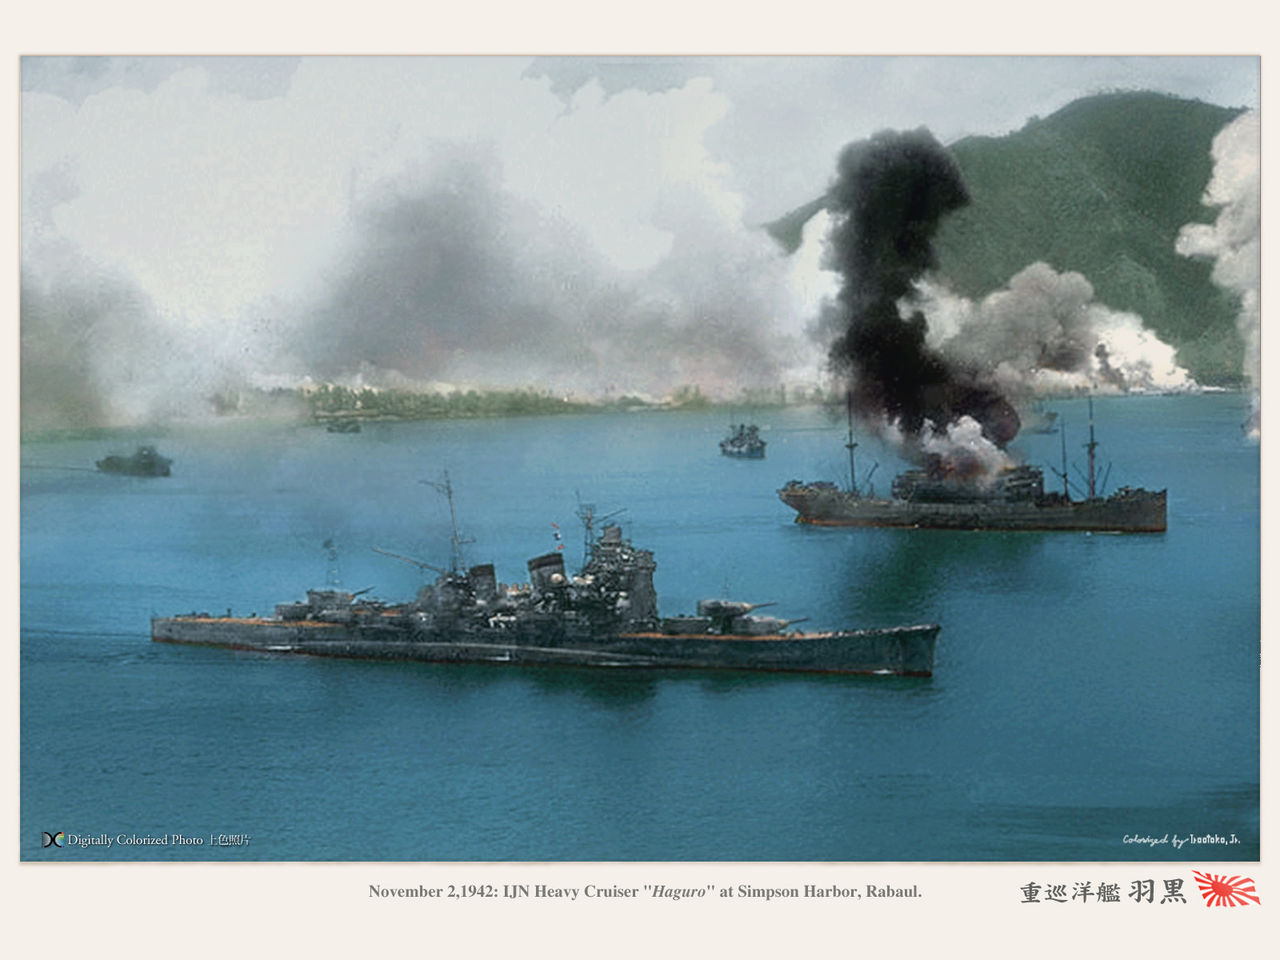 Same photo colorized by Irootoko Jr